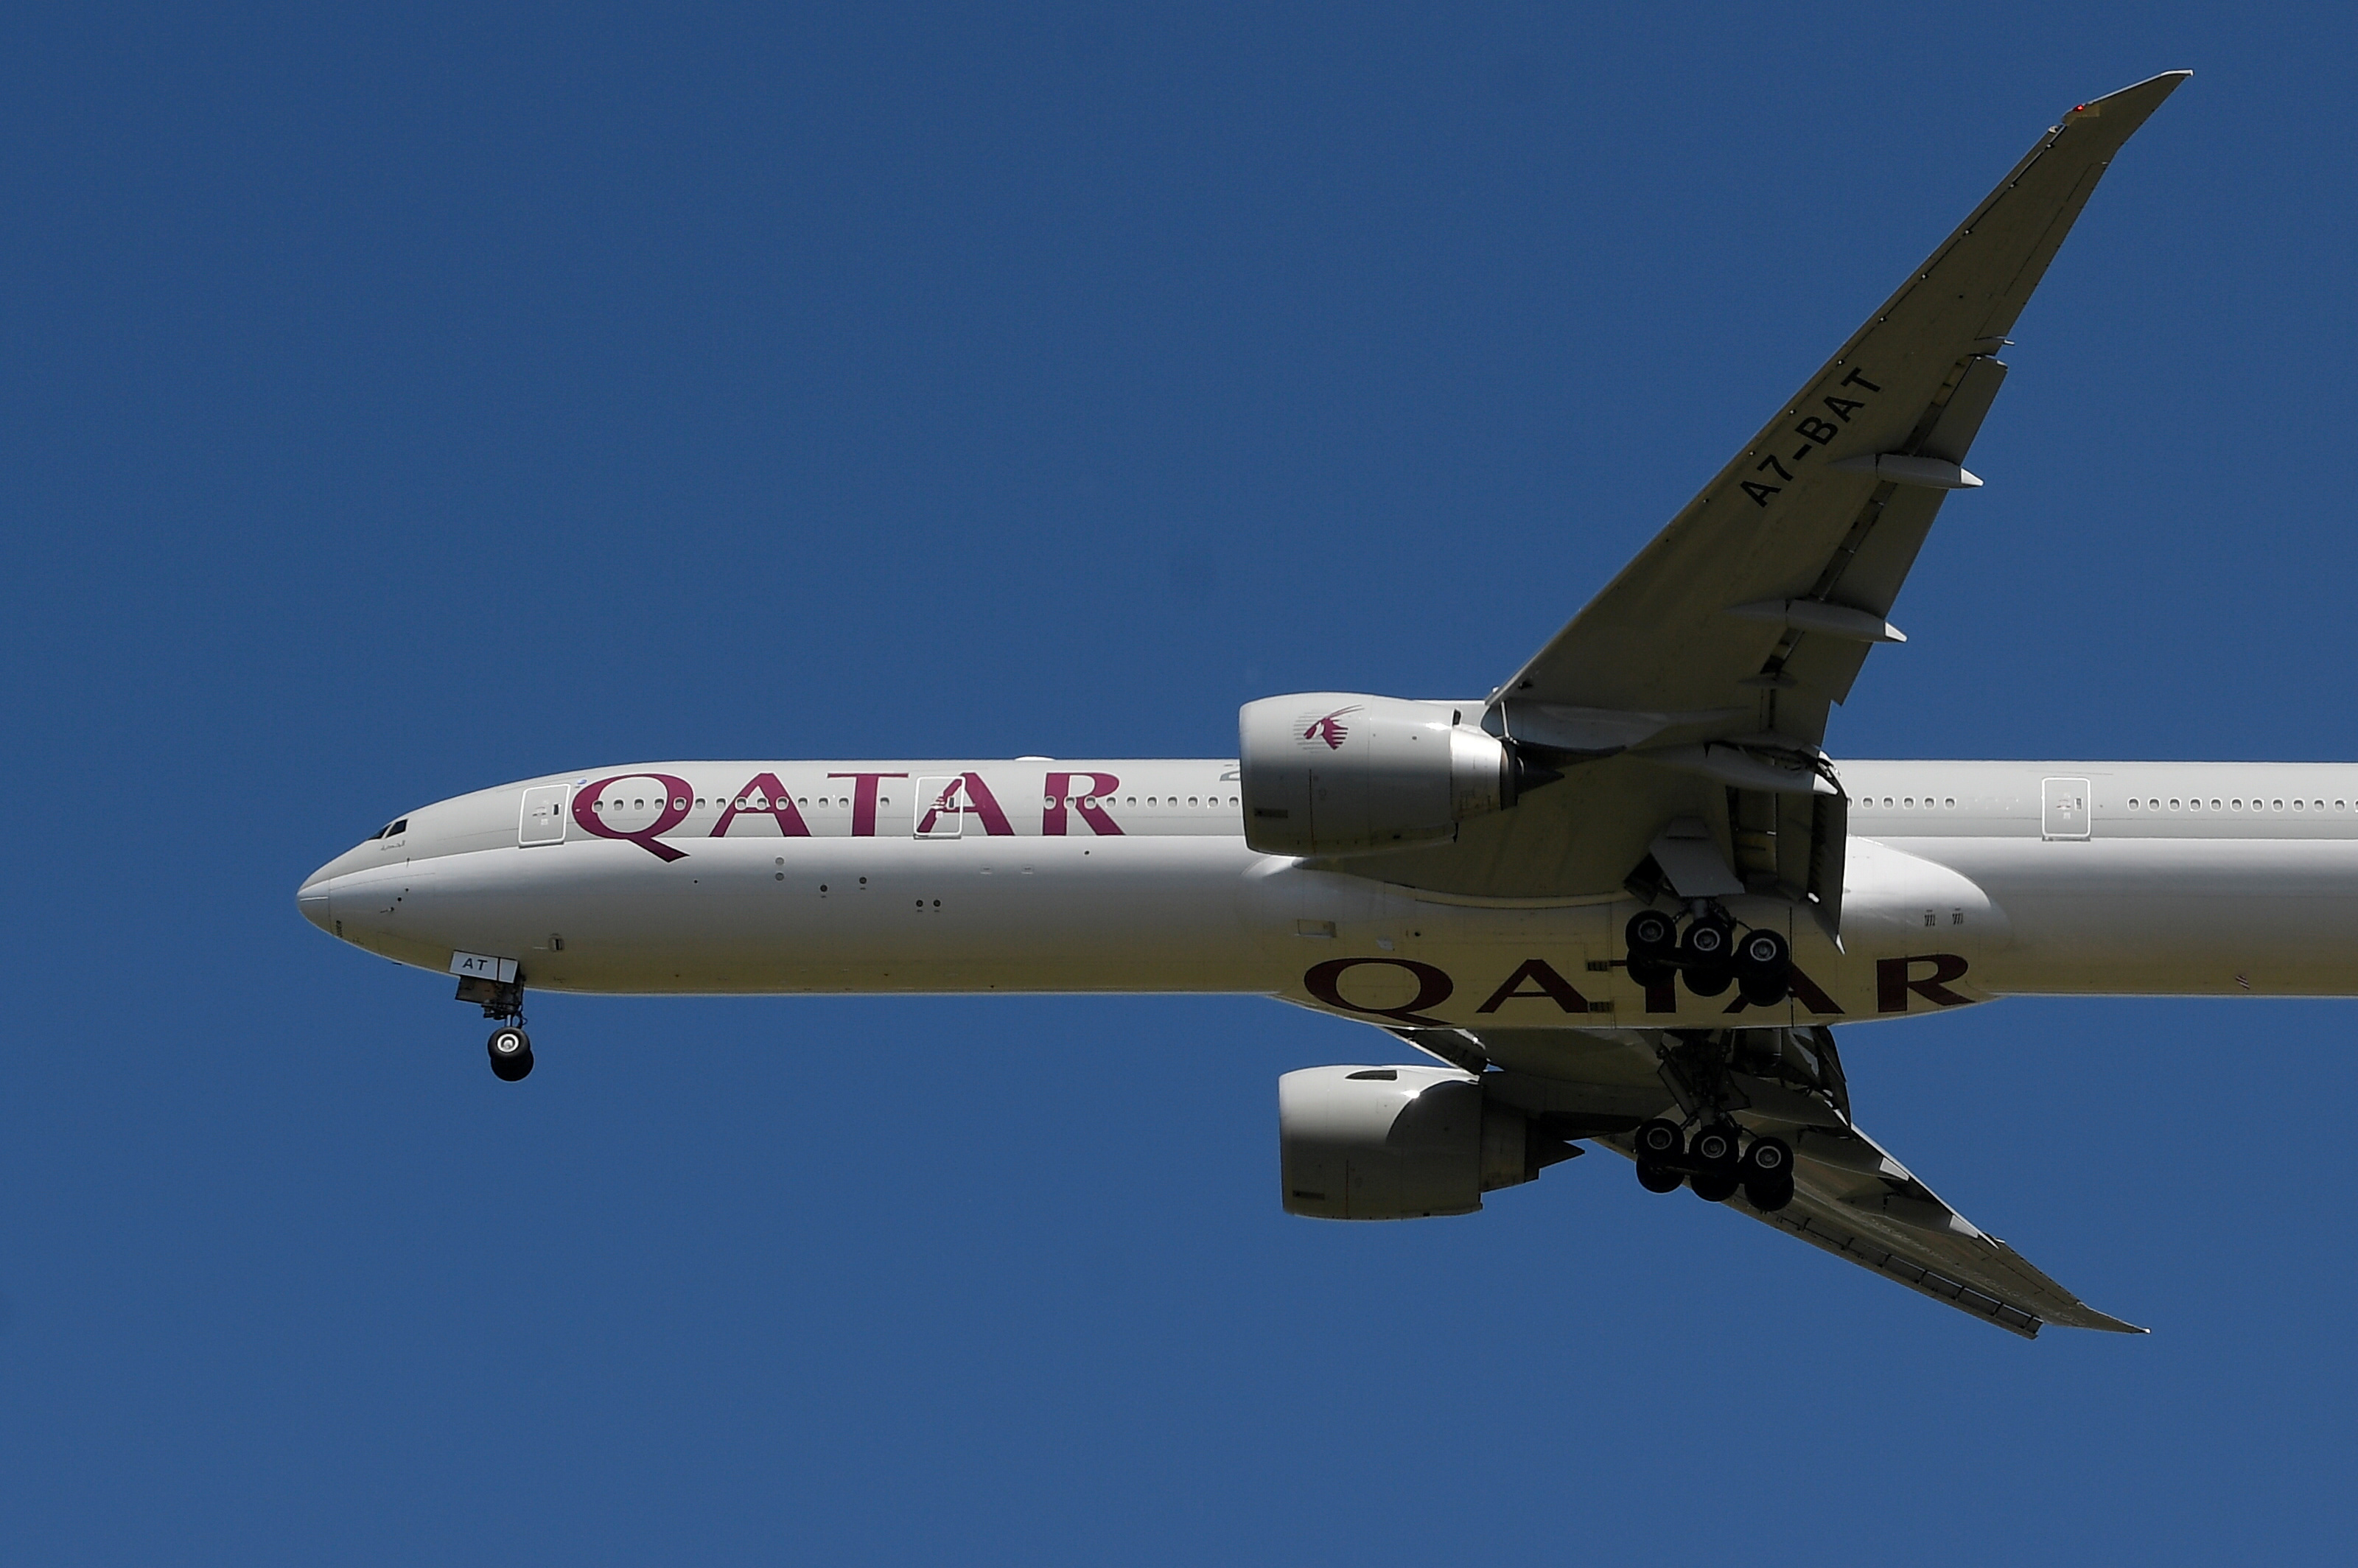 A Qatar Airways passenger plane comes in to land at London Heathrow airport, following the outbreak of the coronavirus disease (COVID-19), London, Britain, May 21, 2020. REUTERS/Toby Melville/File Photo